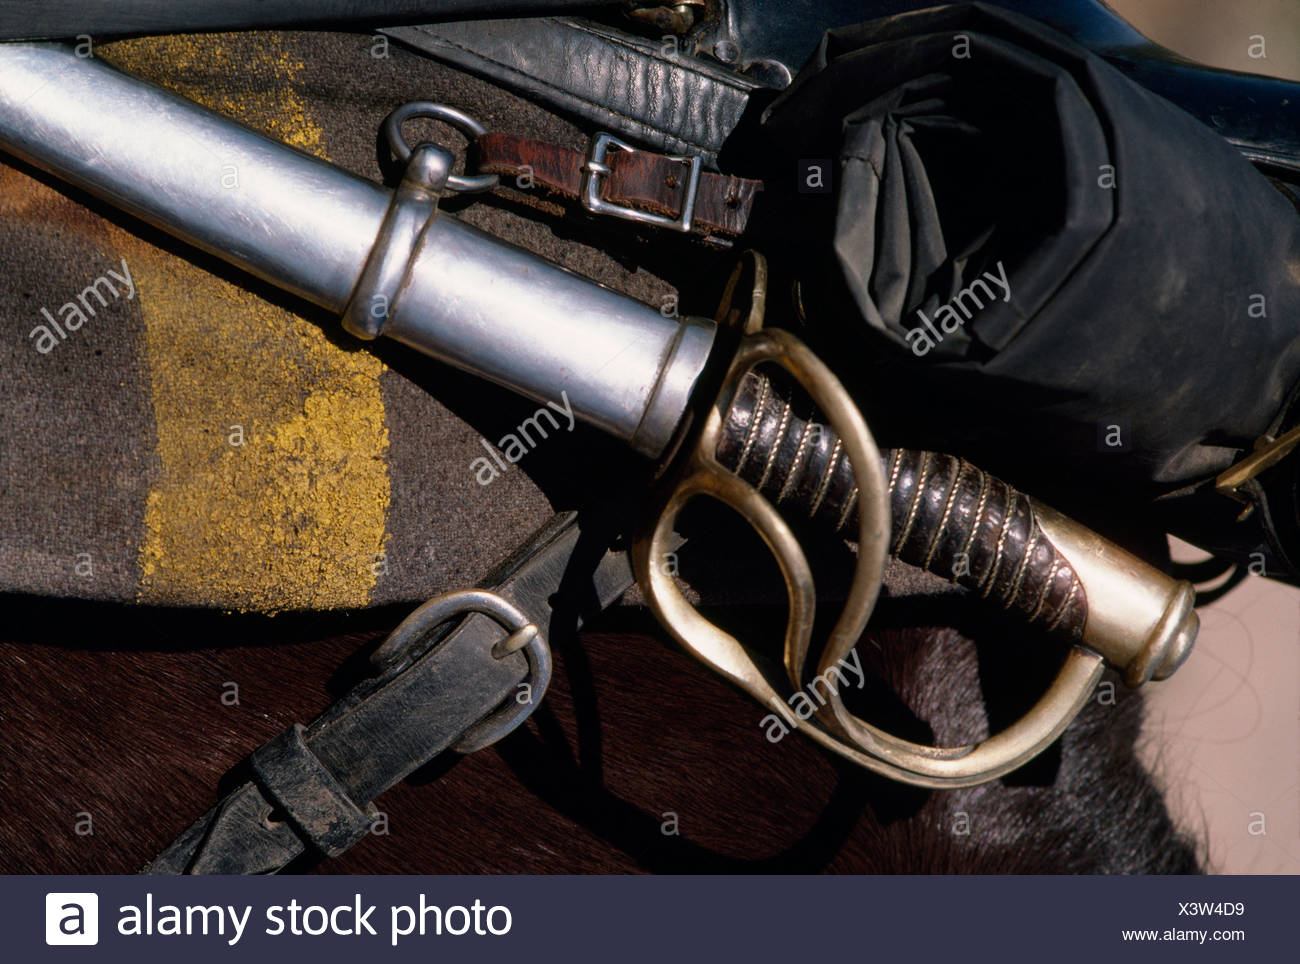 Close up of a sword hilt and scabbard mounted on a horse saddle. - Stock Image